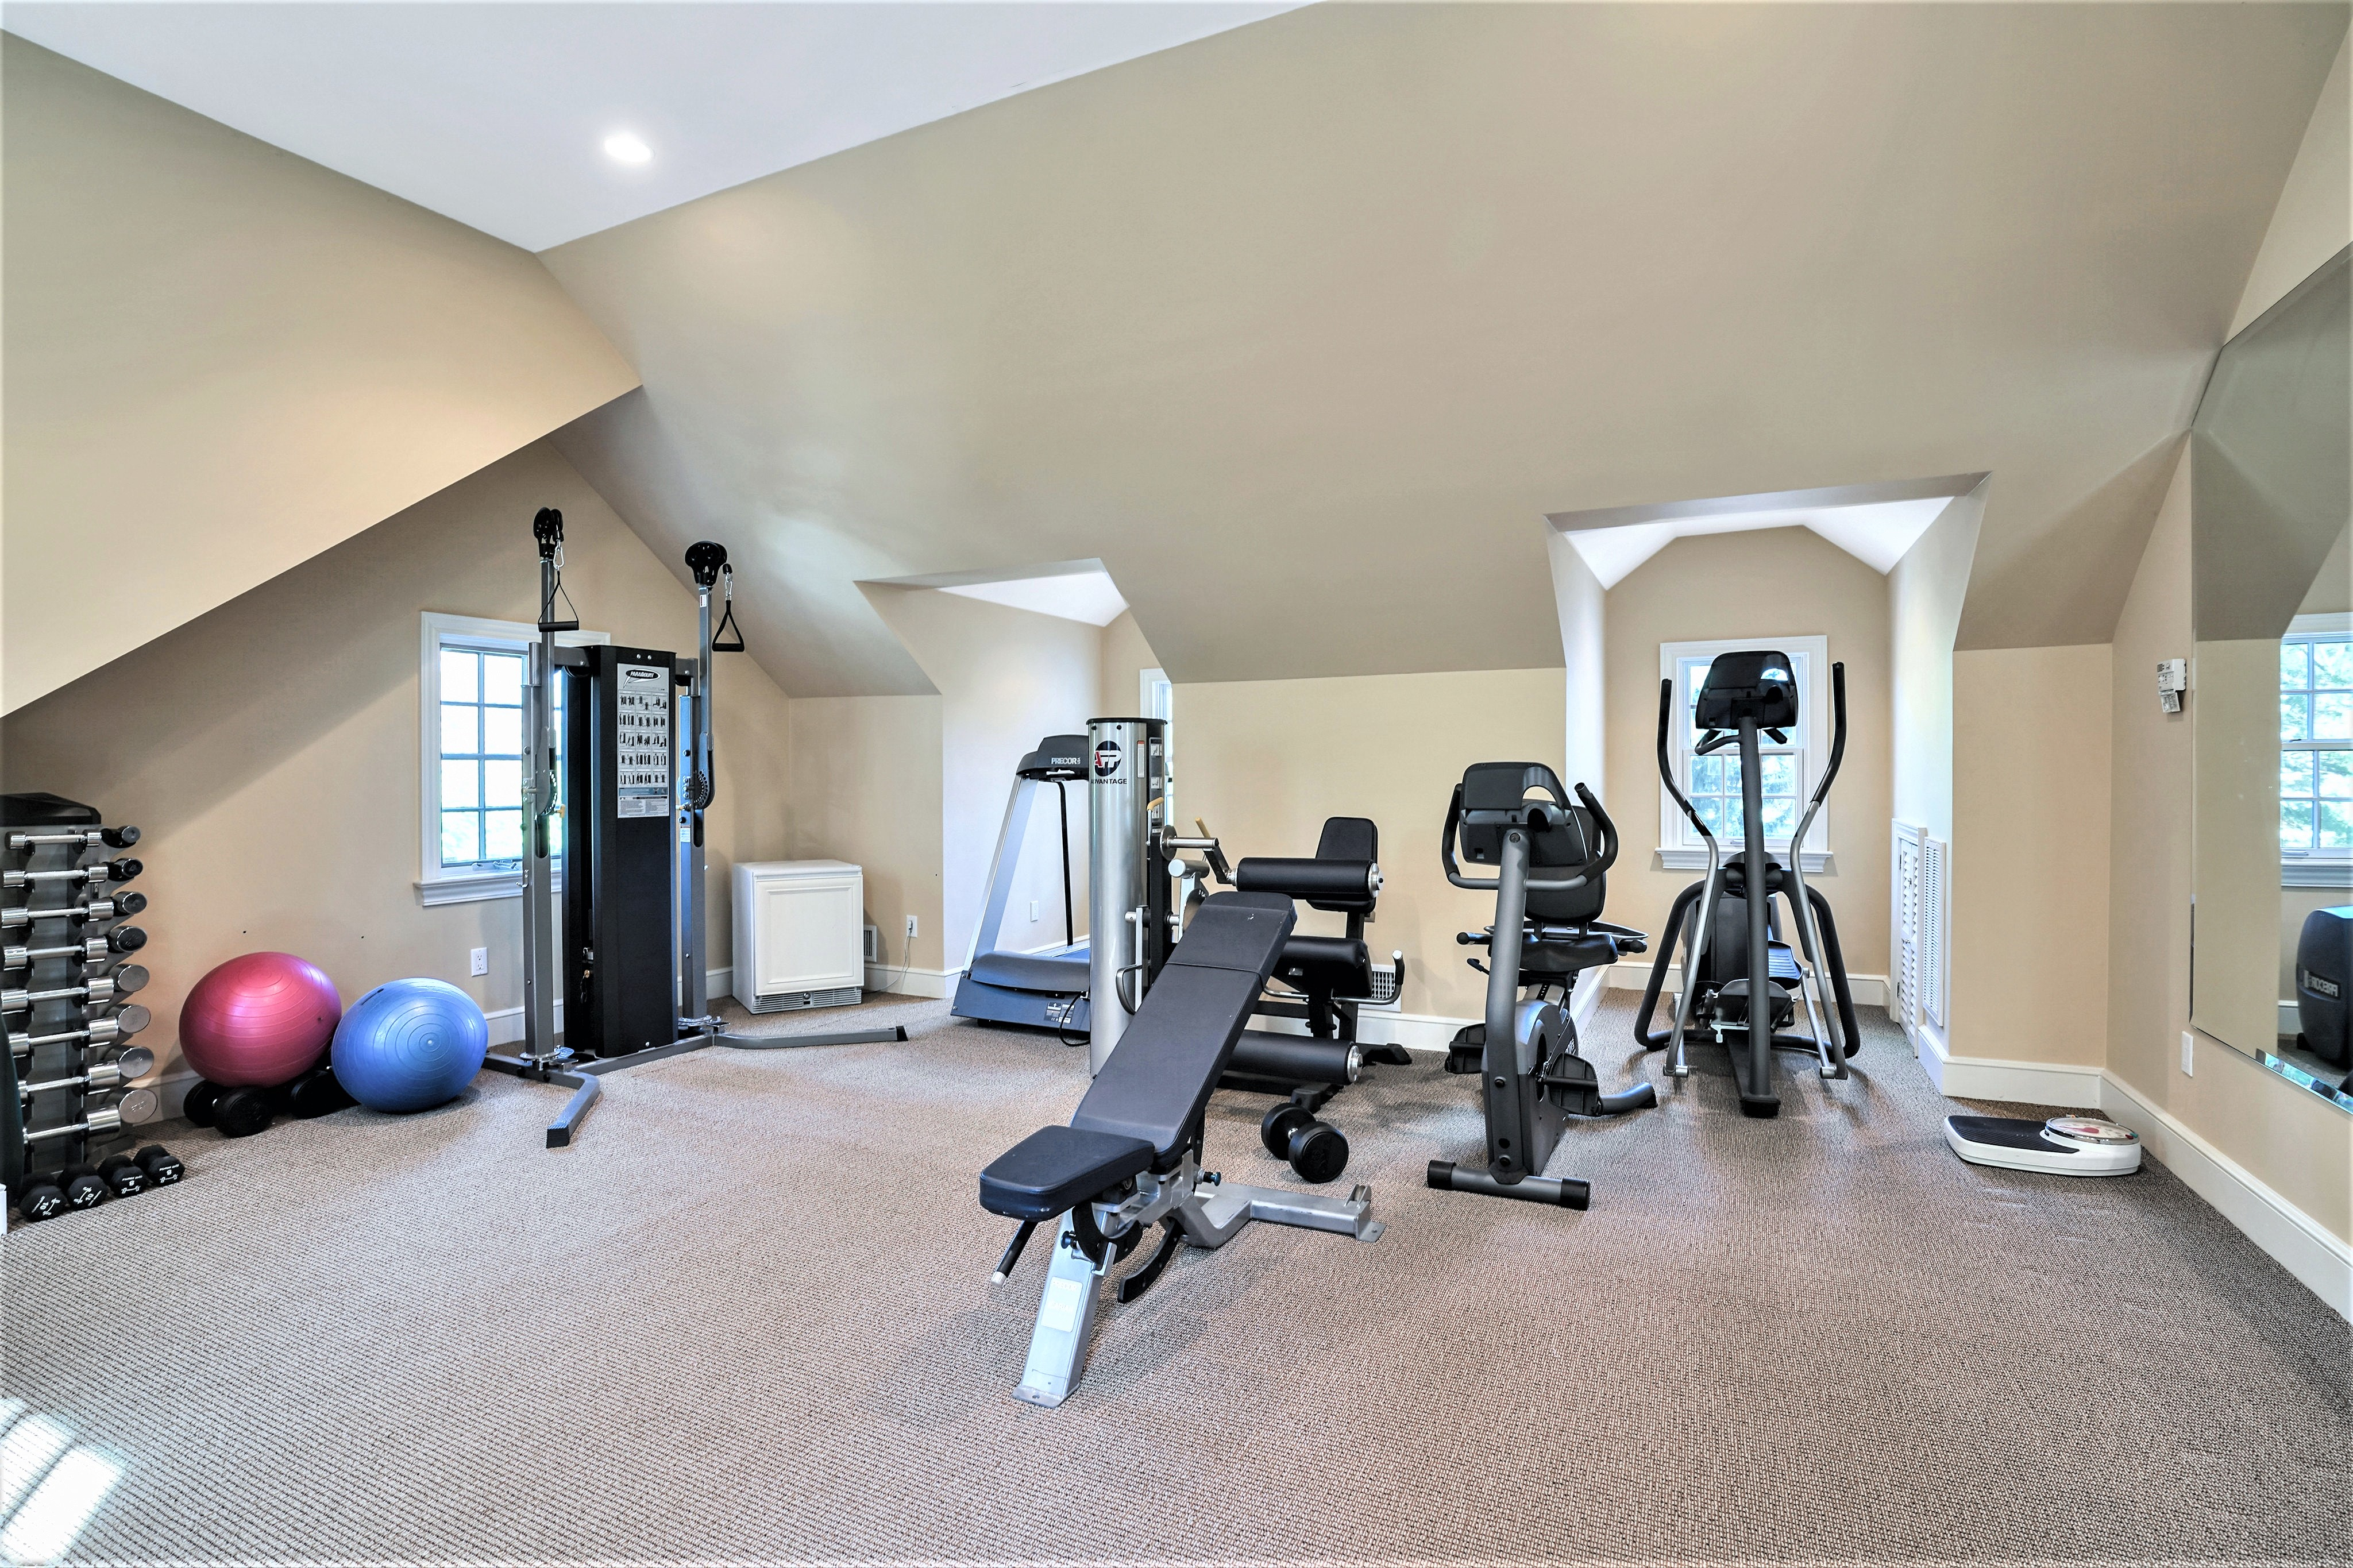 195 Highland Avenue Exercise Room